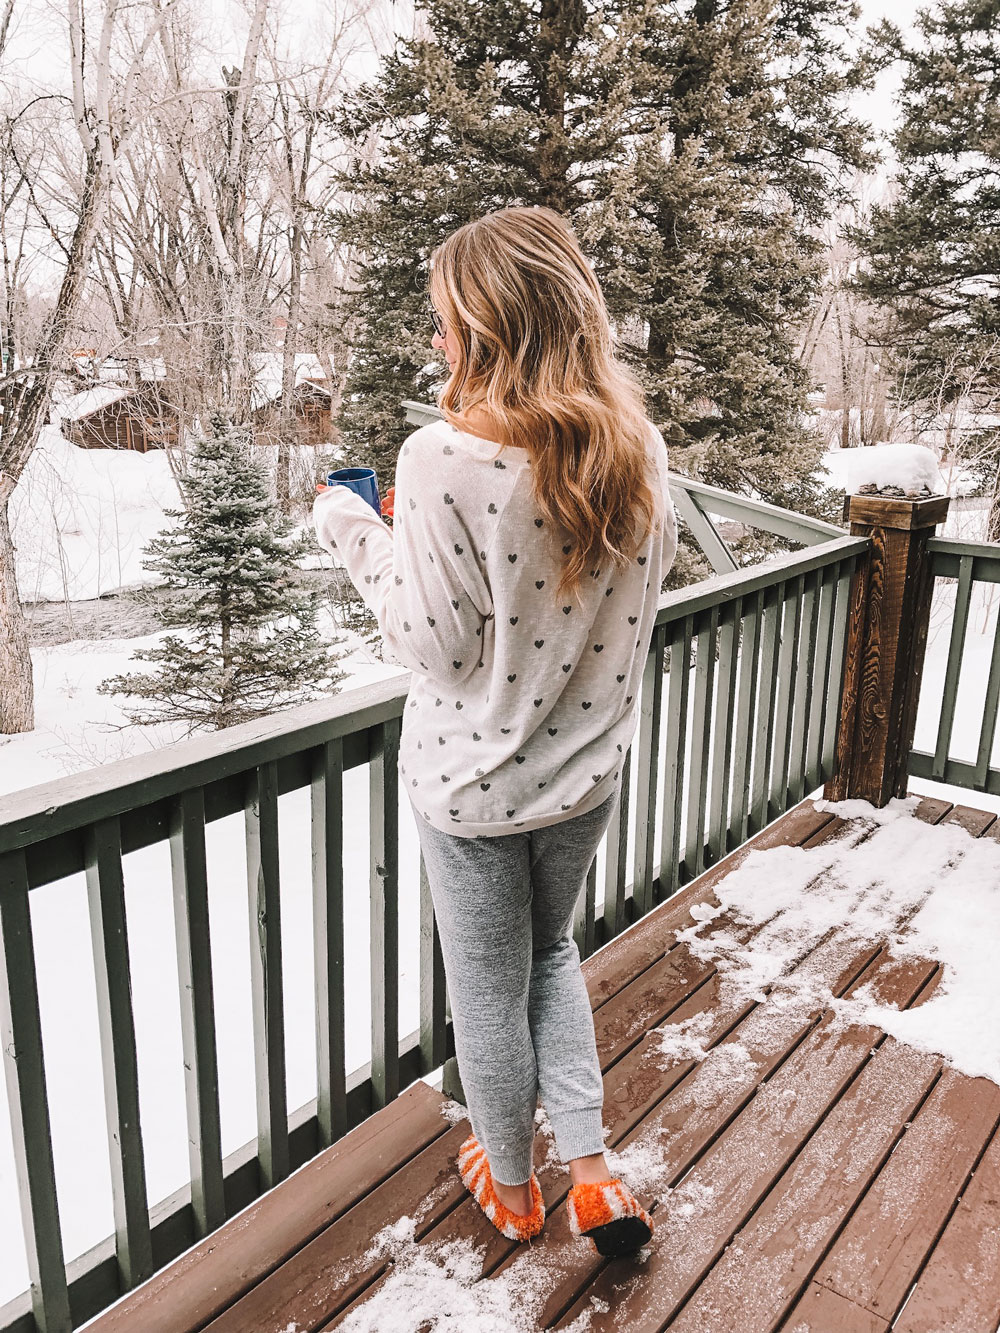 Amanda Martin sips coffee in Crested Butte wearing her coziest PJs